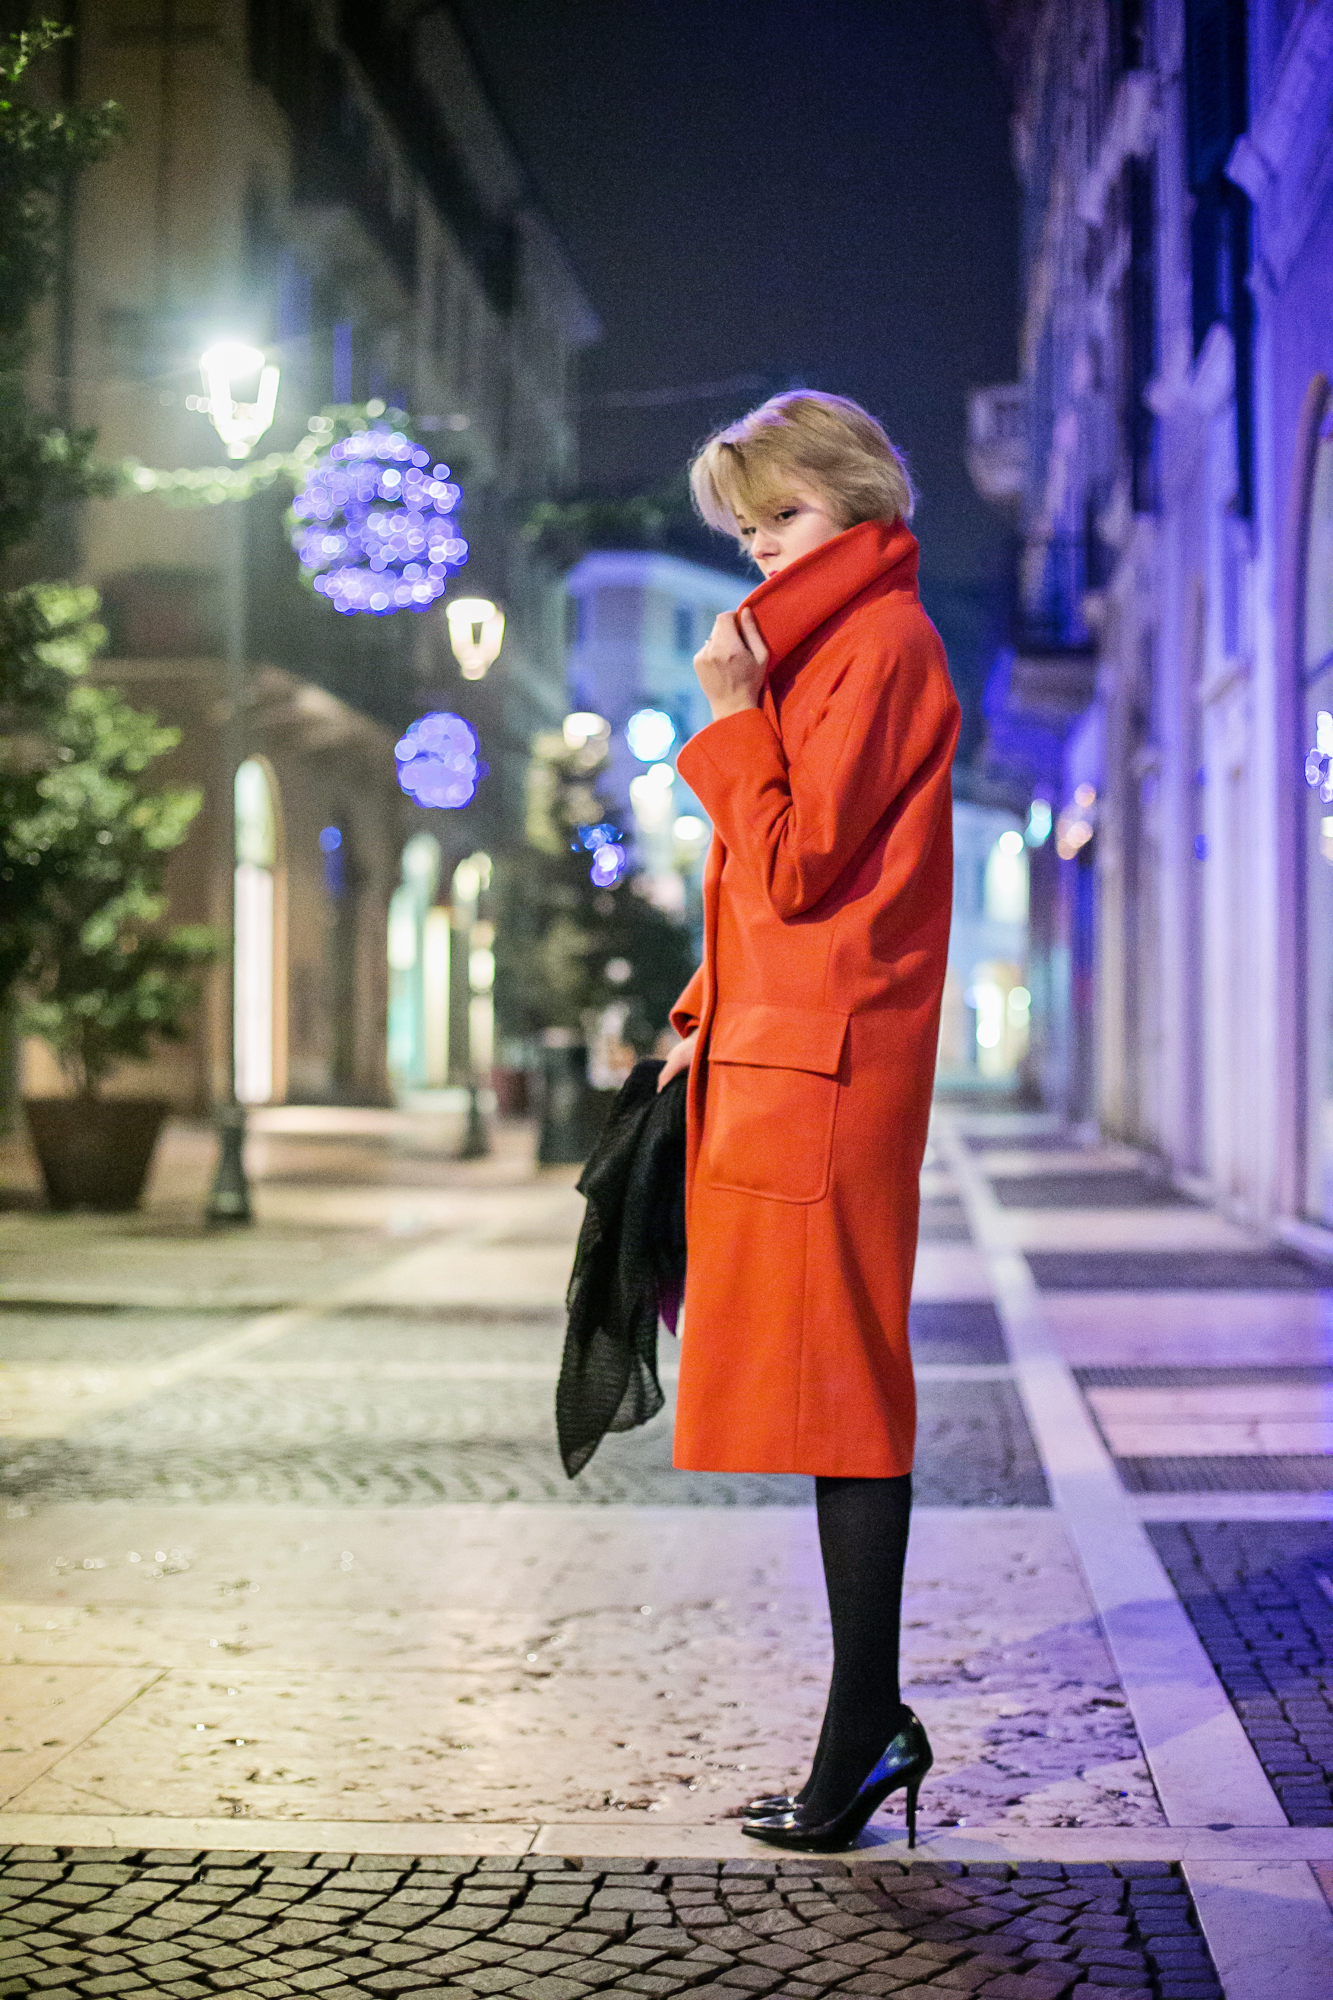 darya kamalova thecablook russian italian fashion bogger street style trend high waist skirt big earings asos maison academia blouse dvf diane von furstenberg circle bag long red coat guess black heels-5 copy